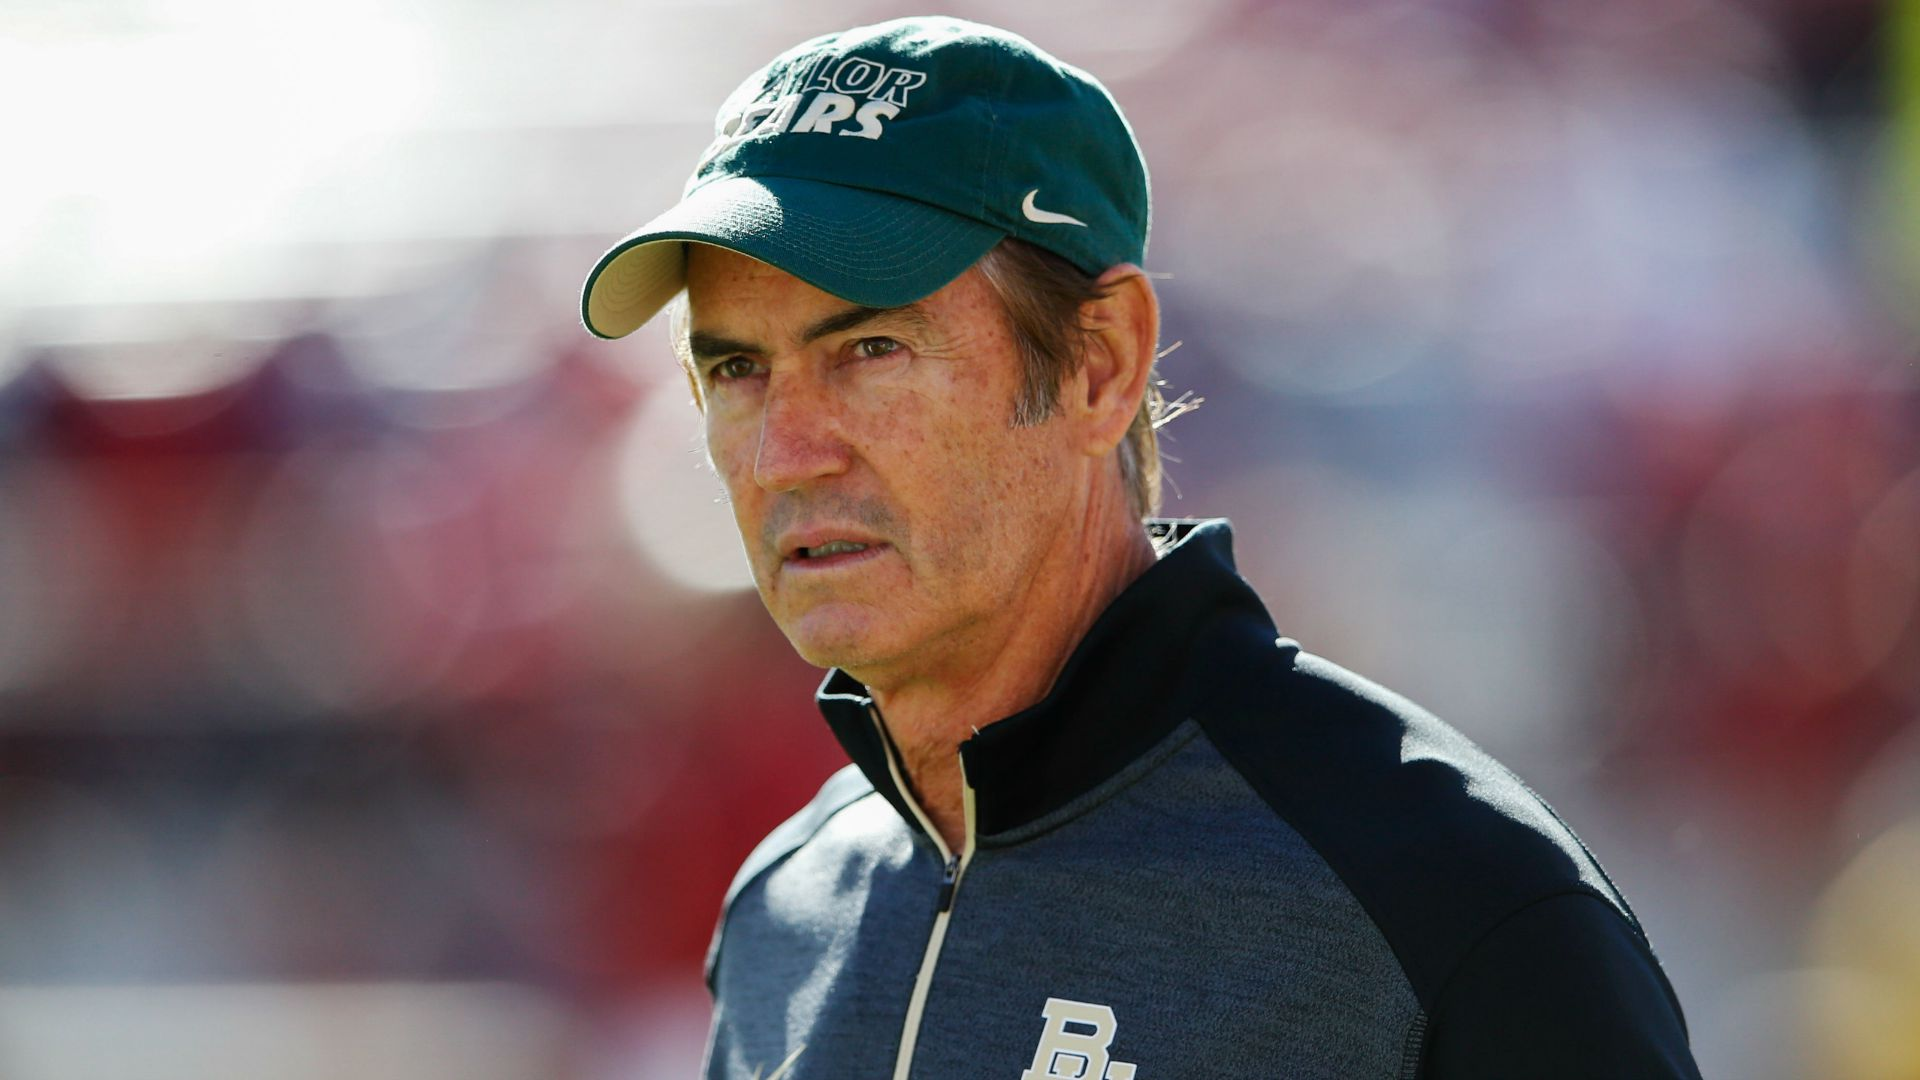 Art Briles has changed the face of Baylor football, but does that make him the best coach in the Big 12? Find out what associate editor Rich Cirminiello thinks as he breaks down his top five Big 12 coaches.